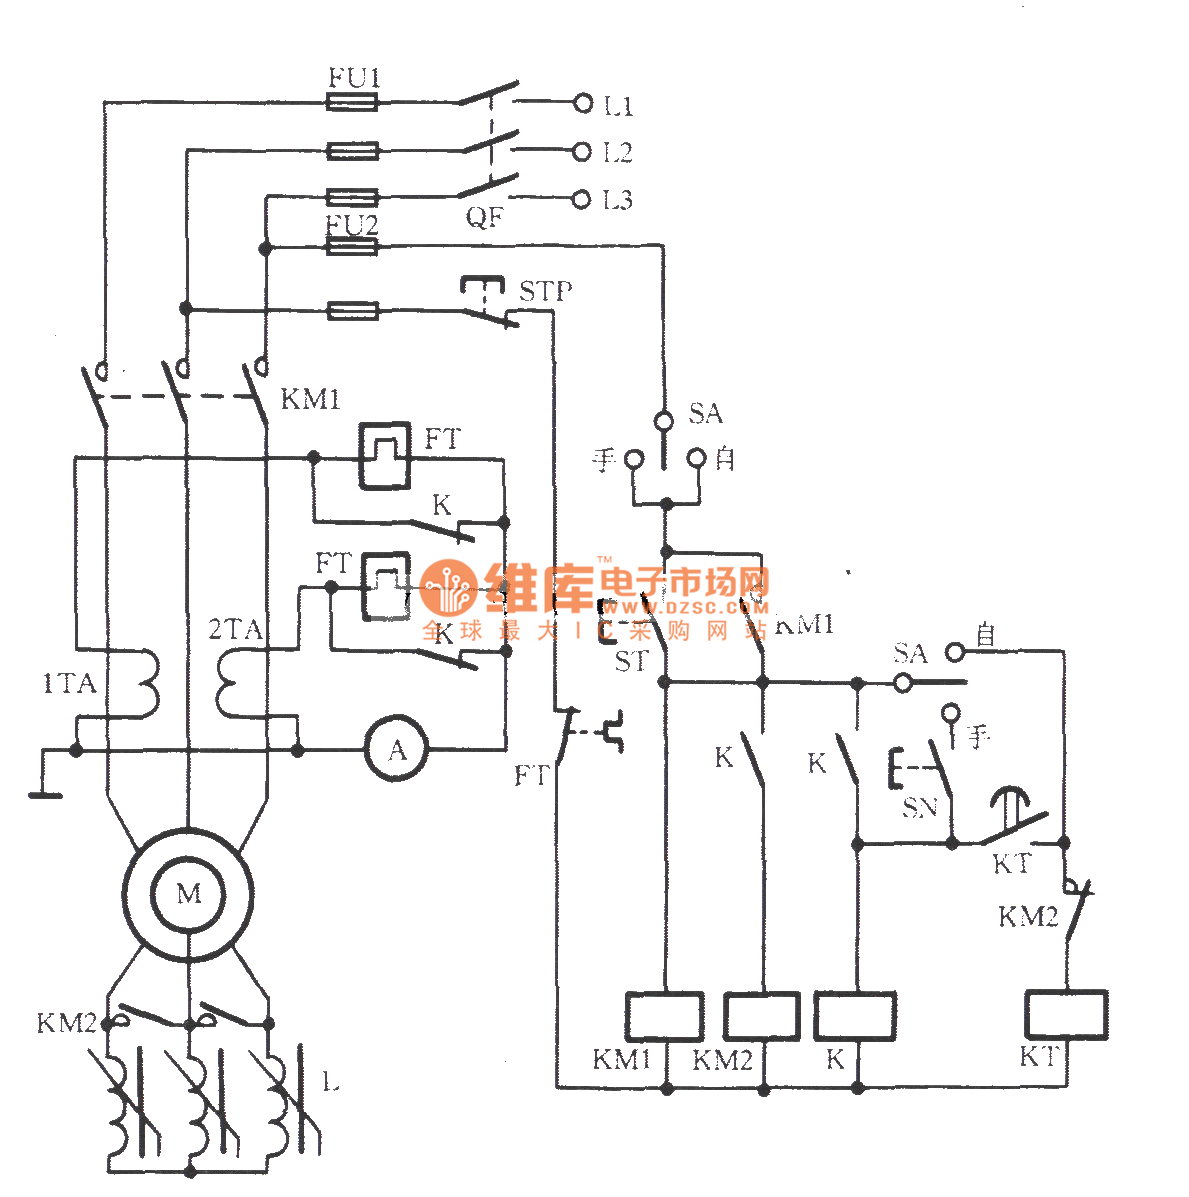 wiring diagram for magnetic contactor with Wound Rotor Motor Diagram on Dol Starter besides Wiring Ex les Phase Solidstate additionally Popular Listings754 further 220v Single Phase Wiring Diagram besides Wound Rotor Motor Diagram.